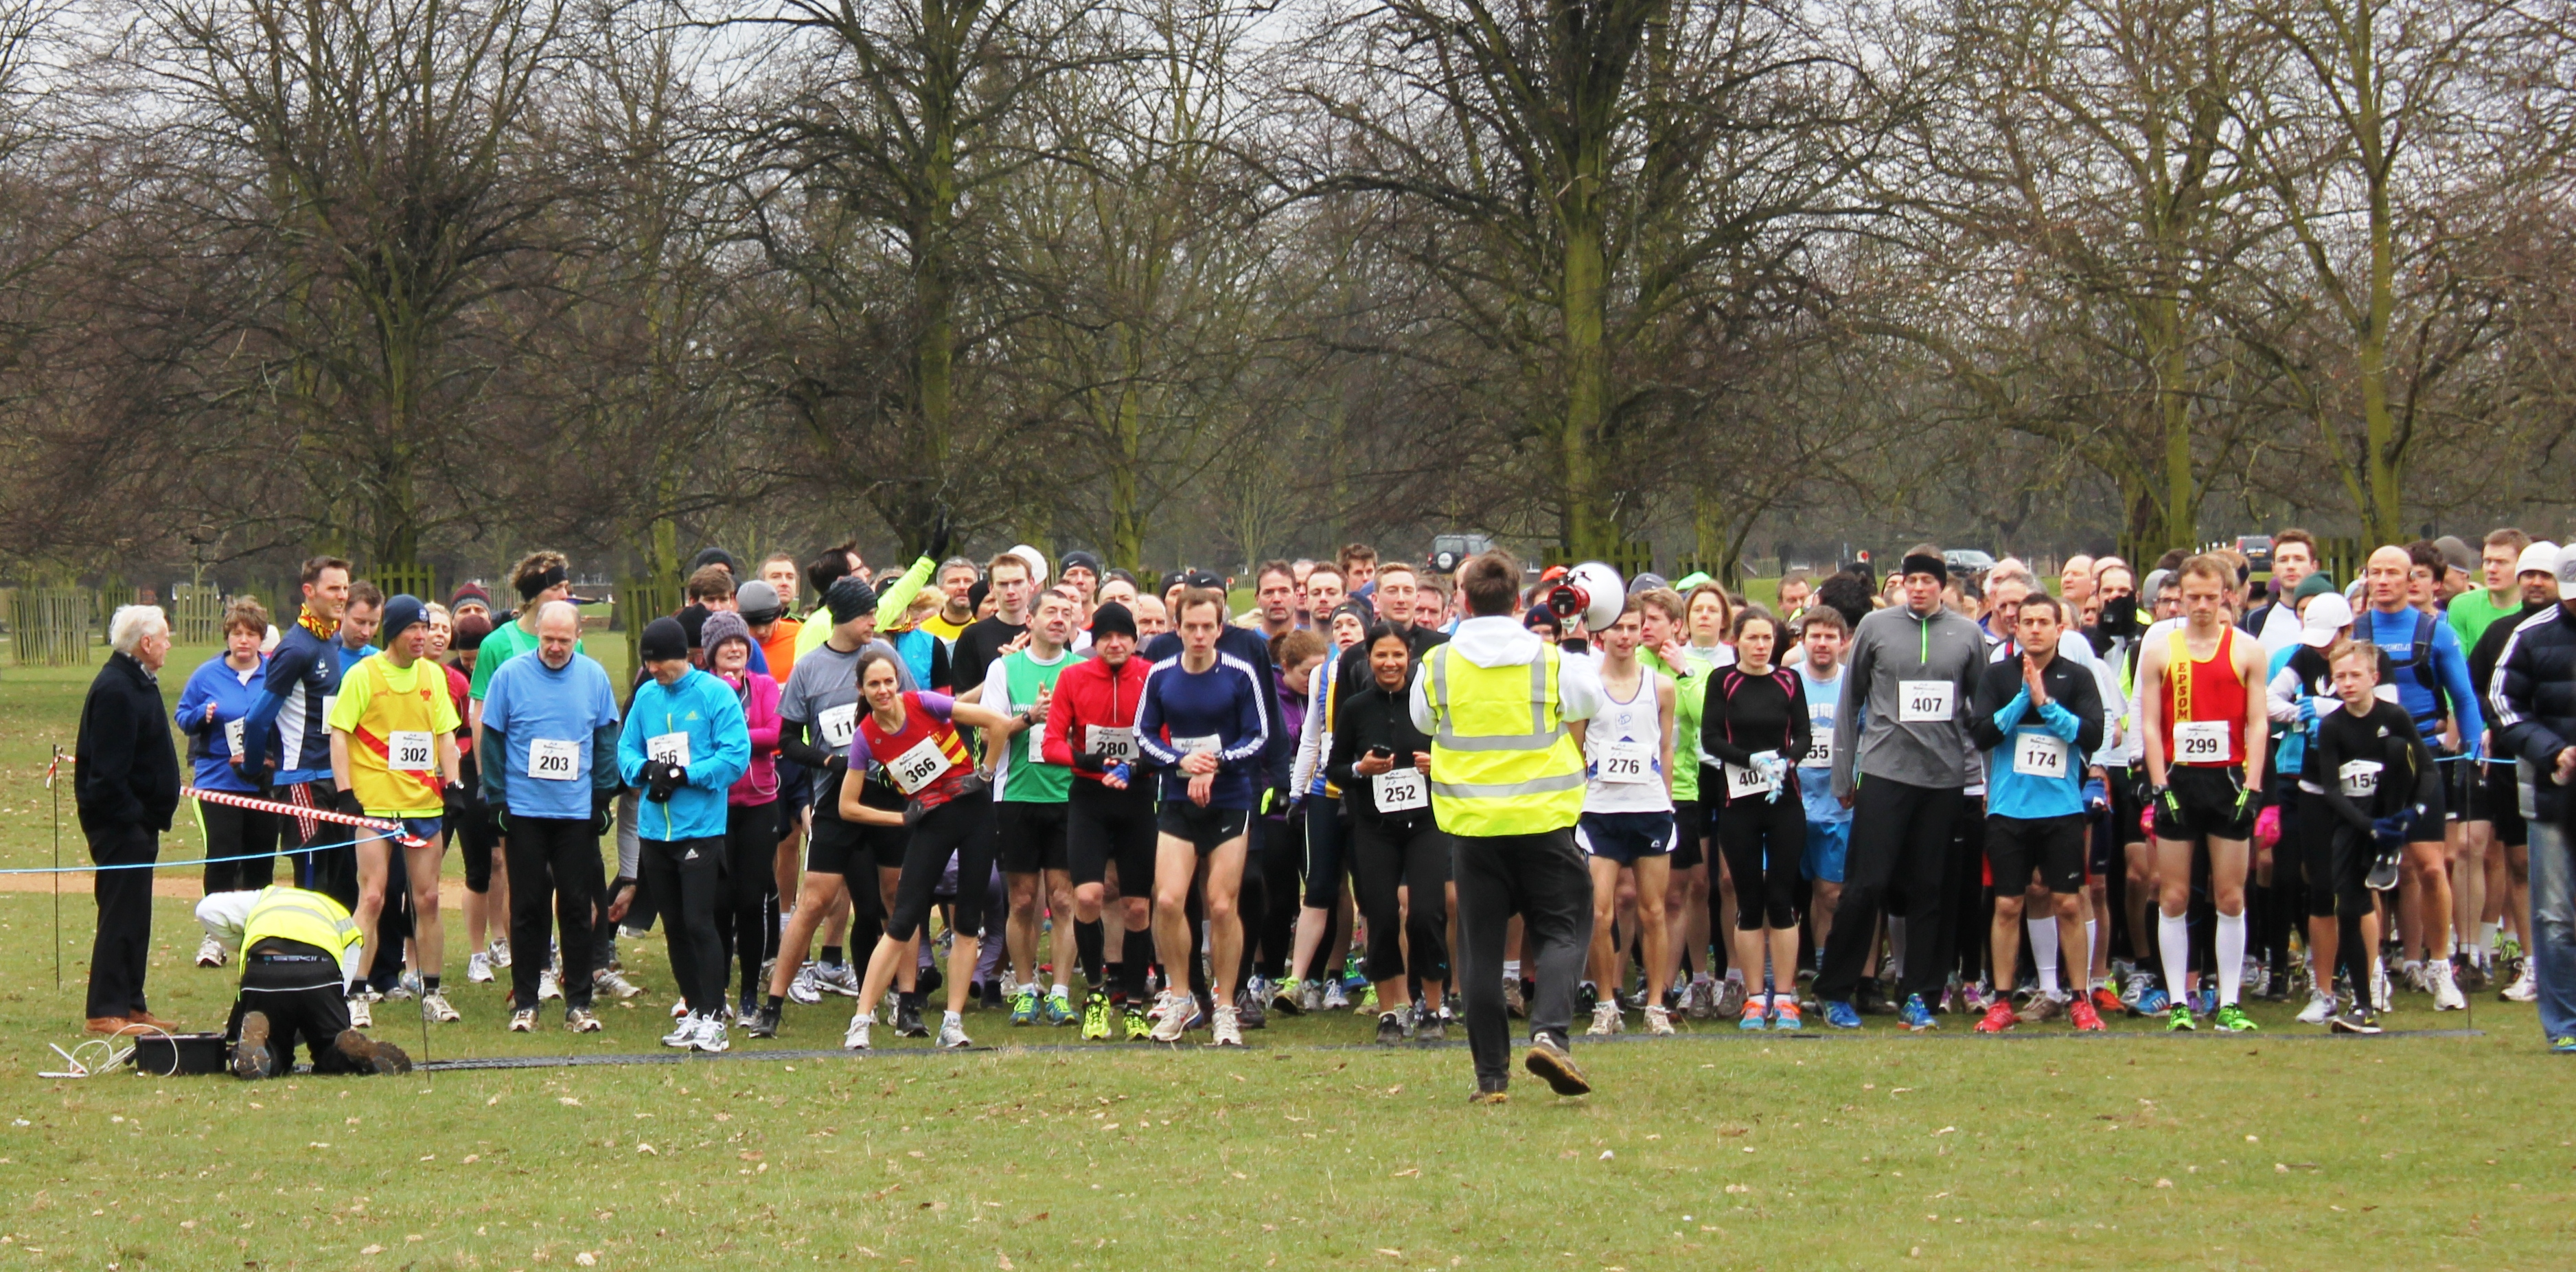 Freezing runners on the start line